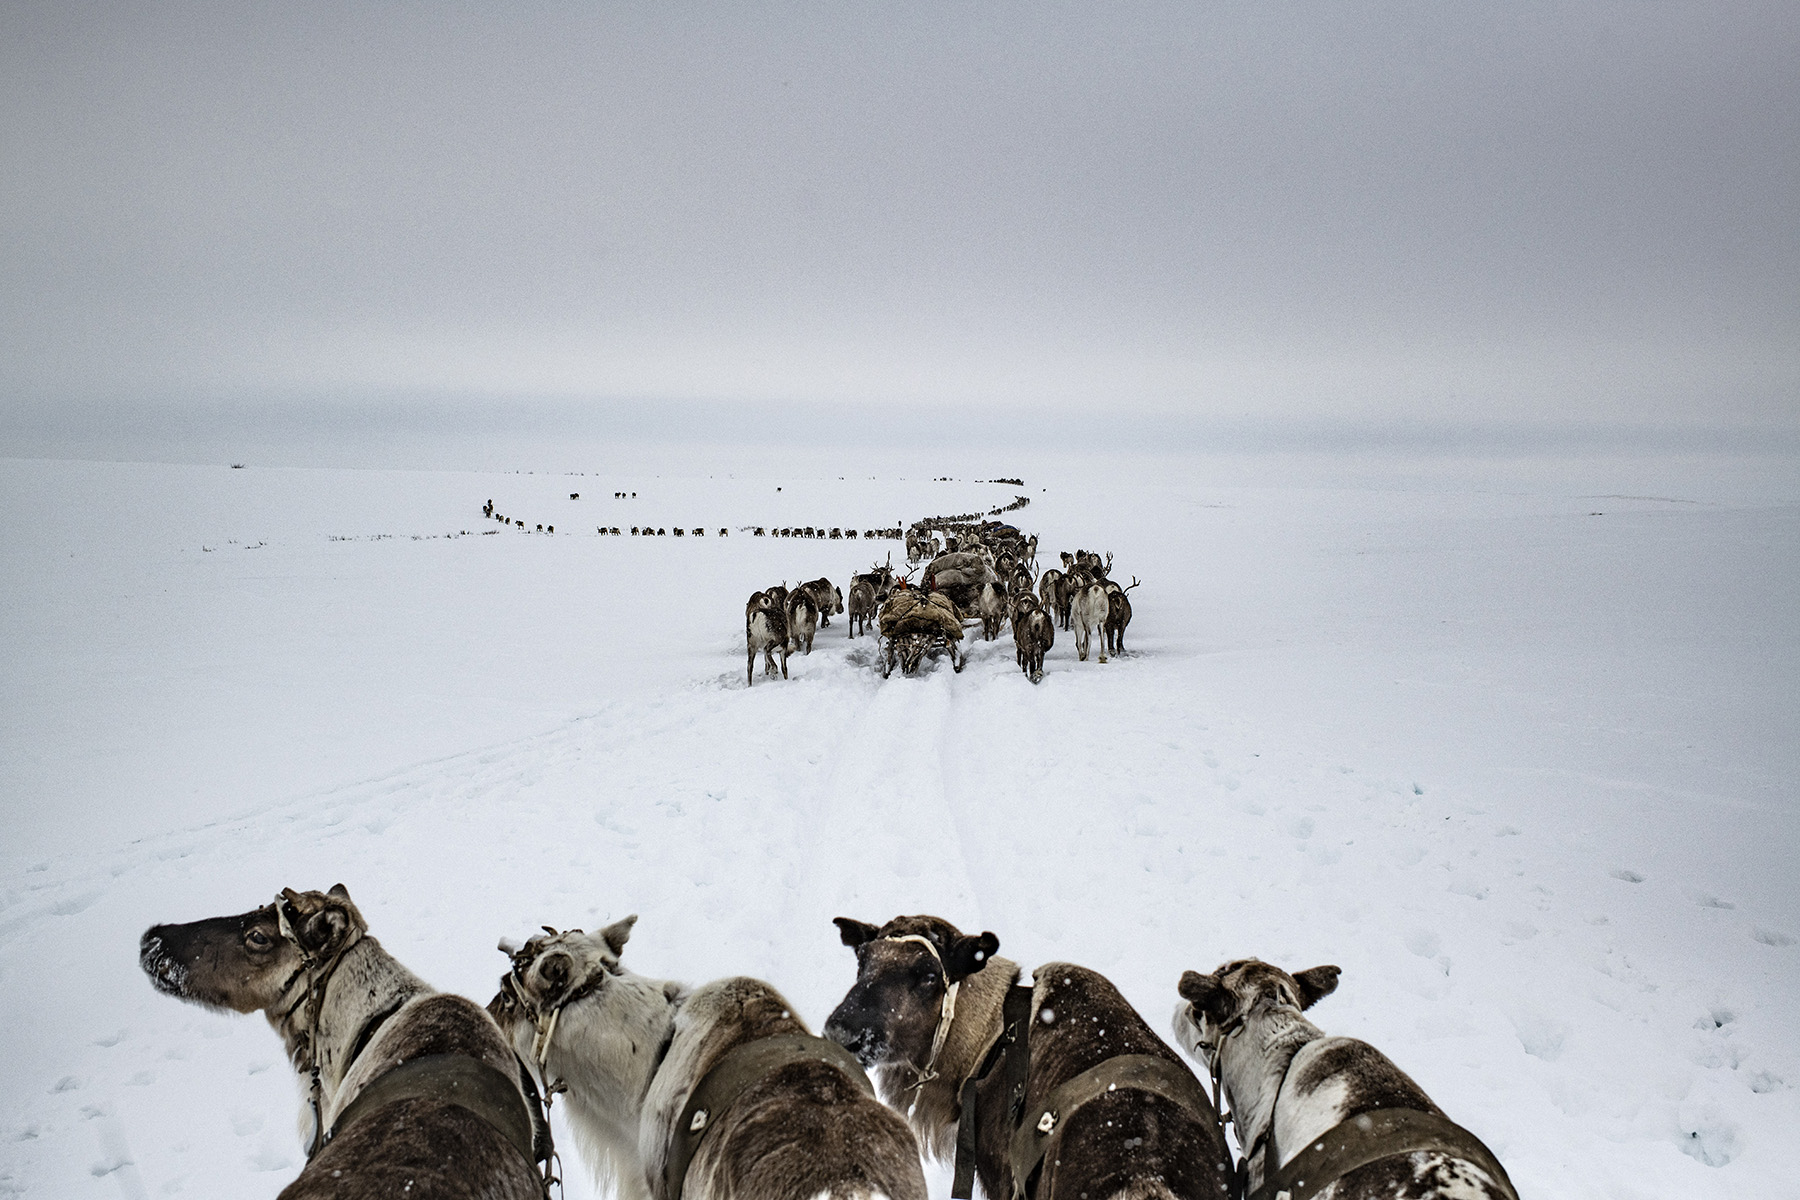 Russia, Yamal Peninsula, April 2018